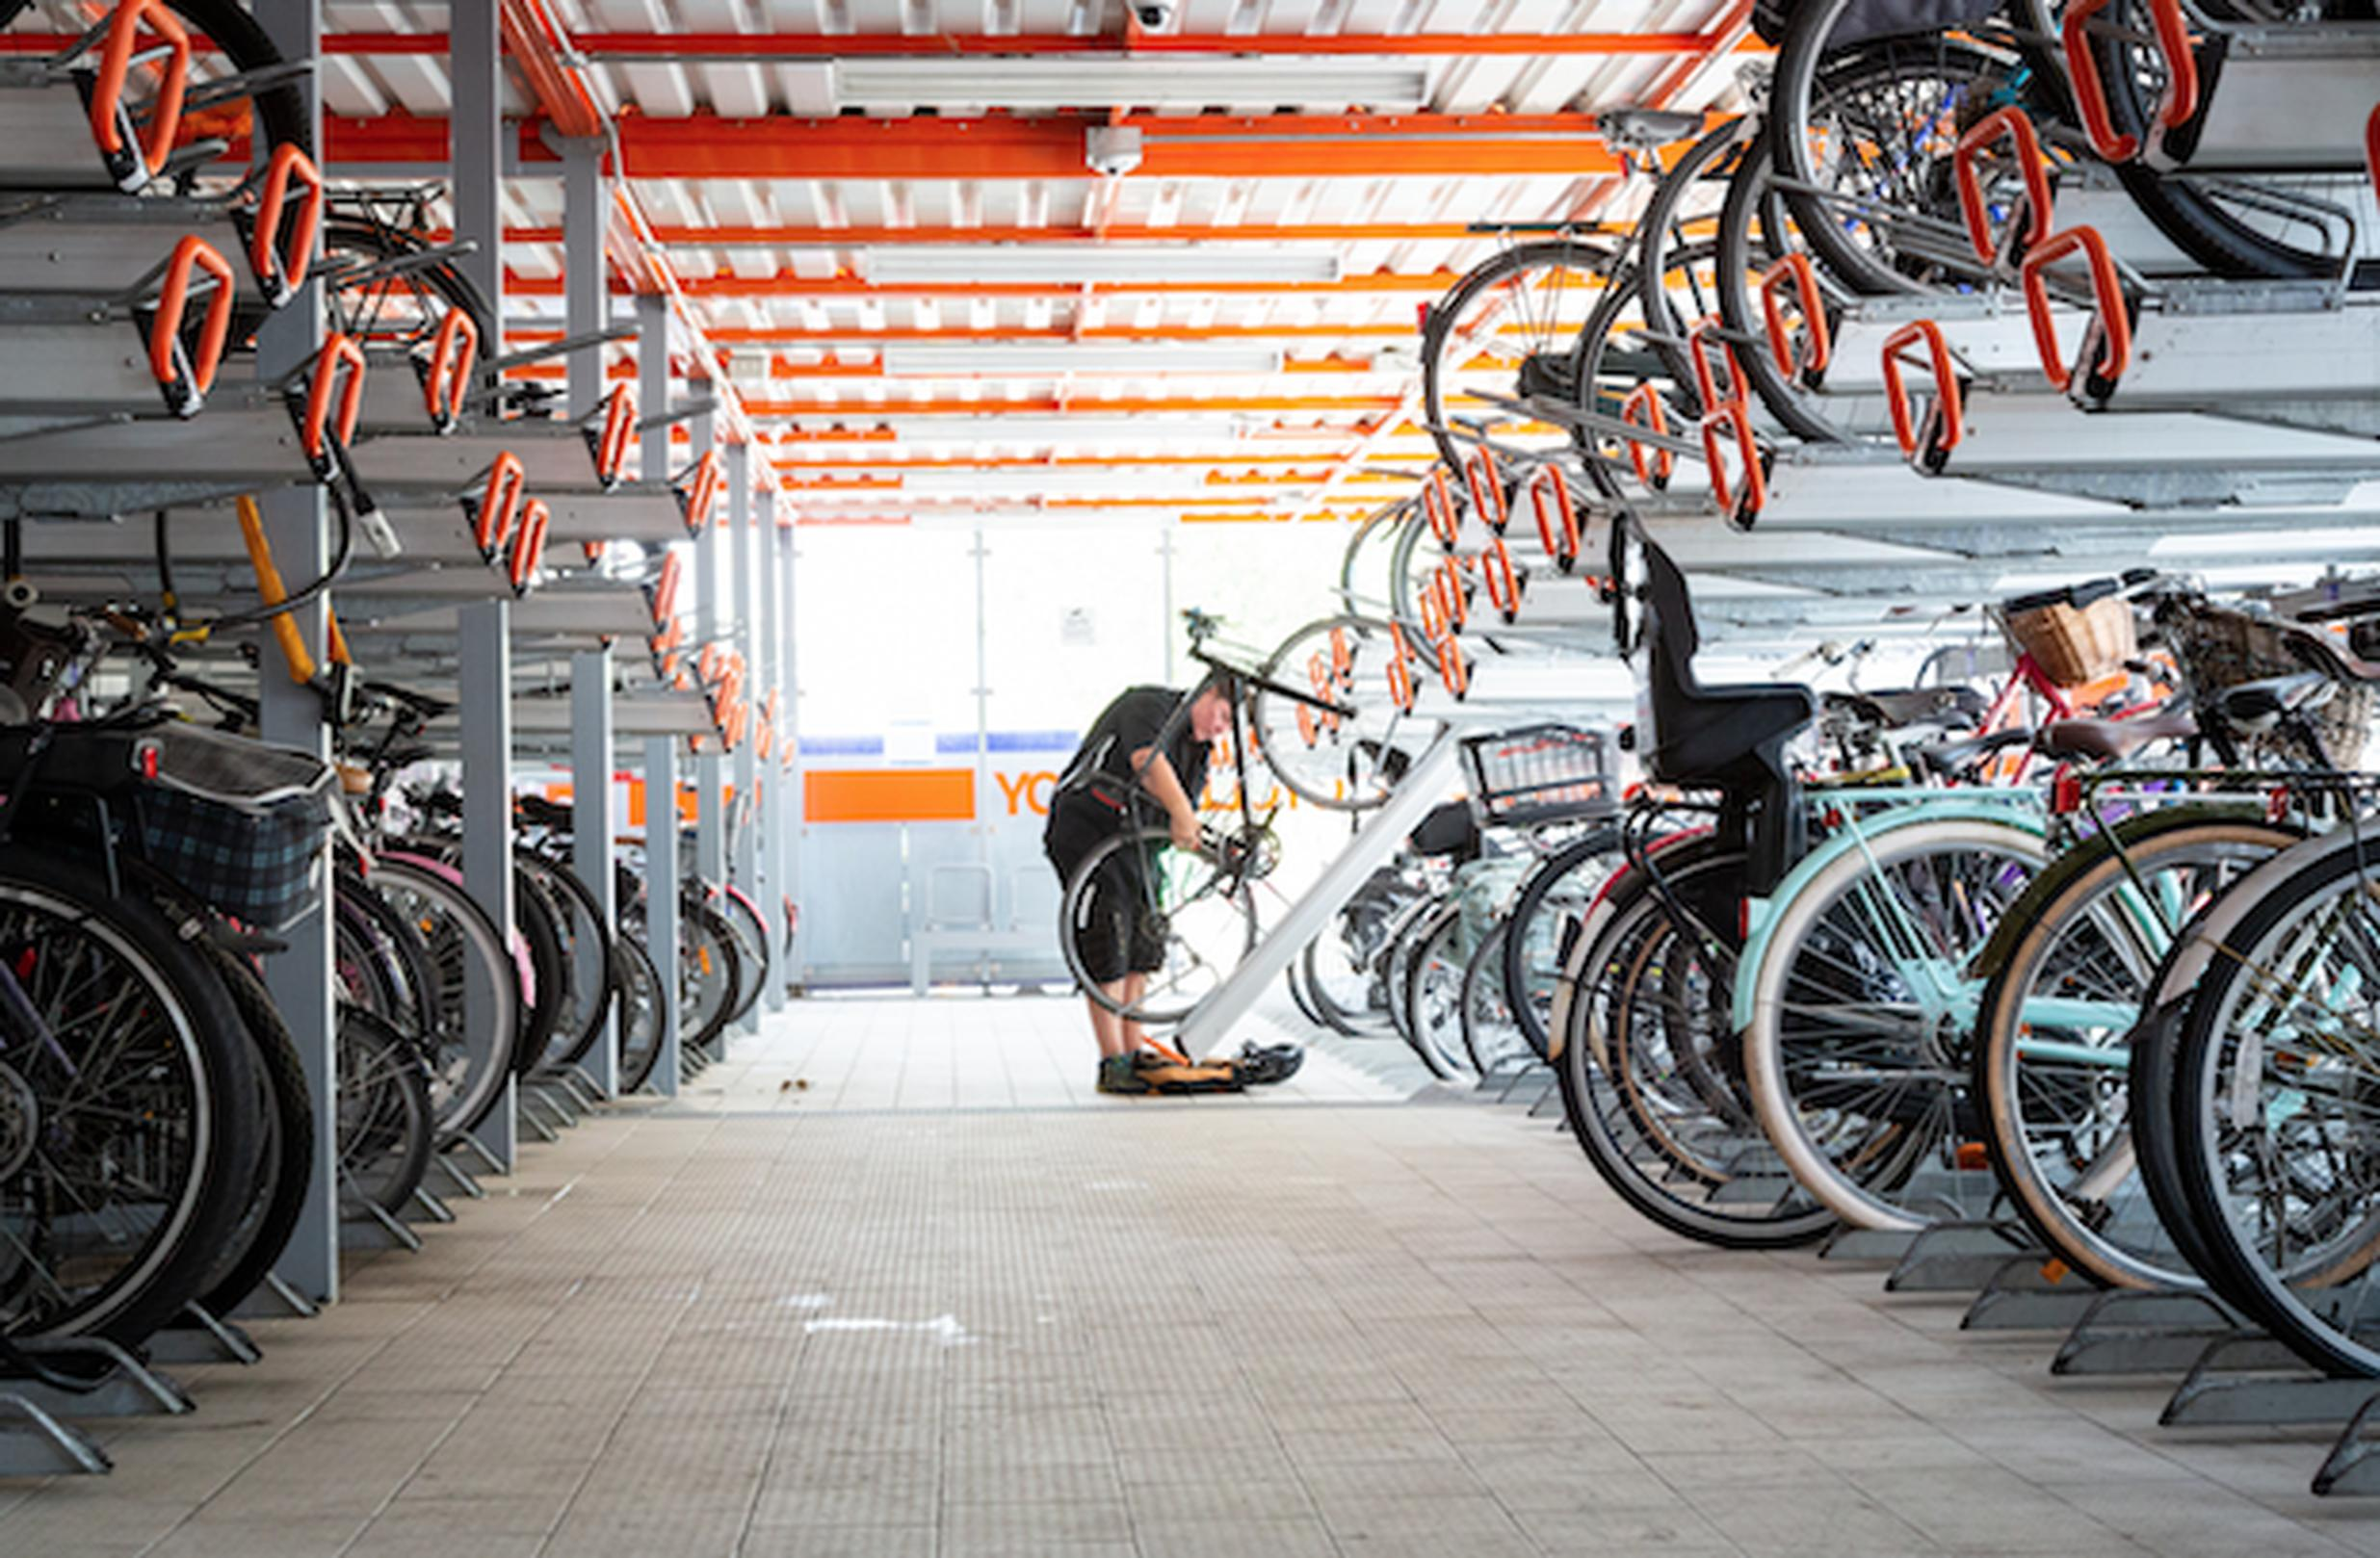 TfL funding will support the creation of more cycle secure parking across the capital